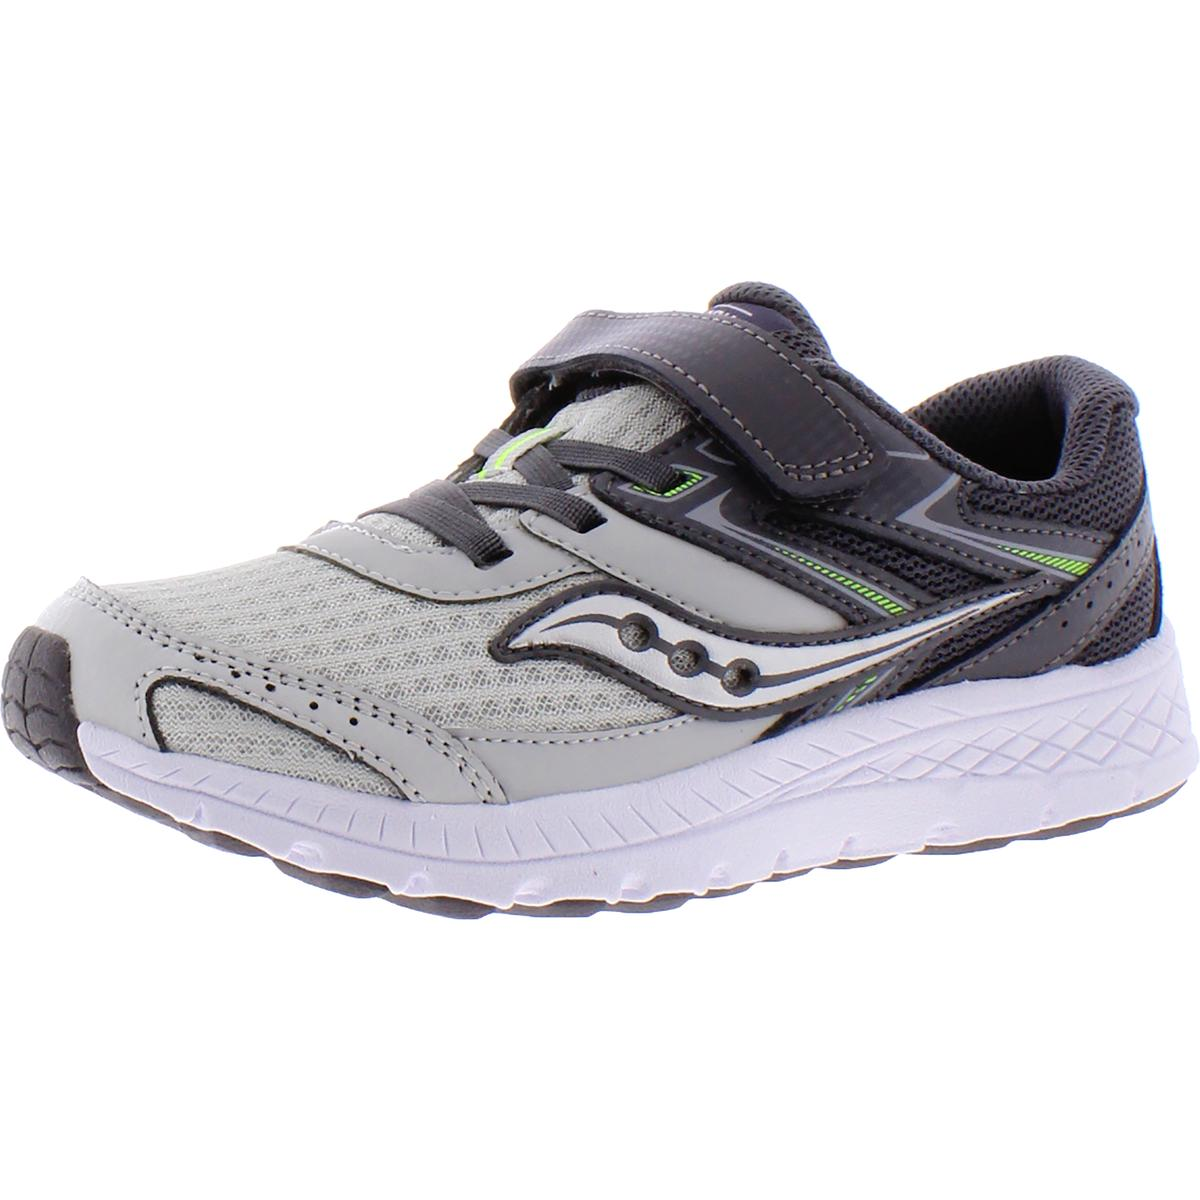 Saucony Boys Cohesion Lifestyle Performance Walking Shoes Sneakers BHFO 4311